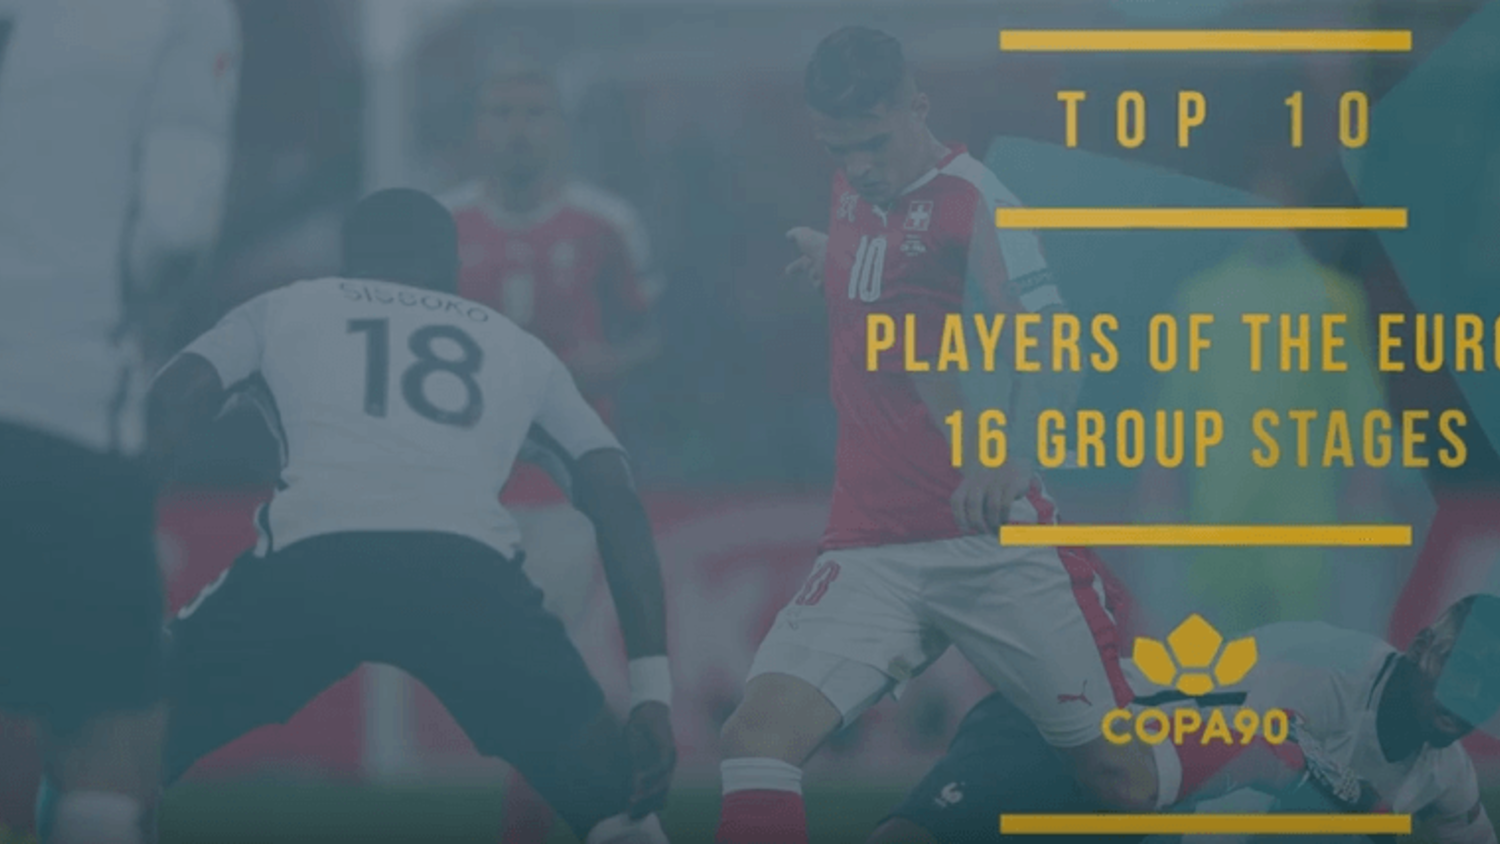 Top 10 Players of Euro 2016 Group Stages